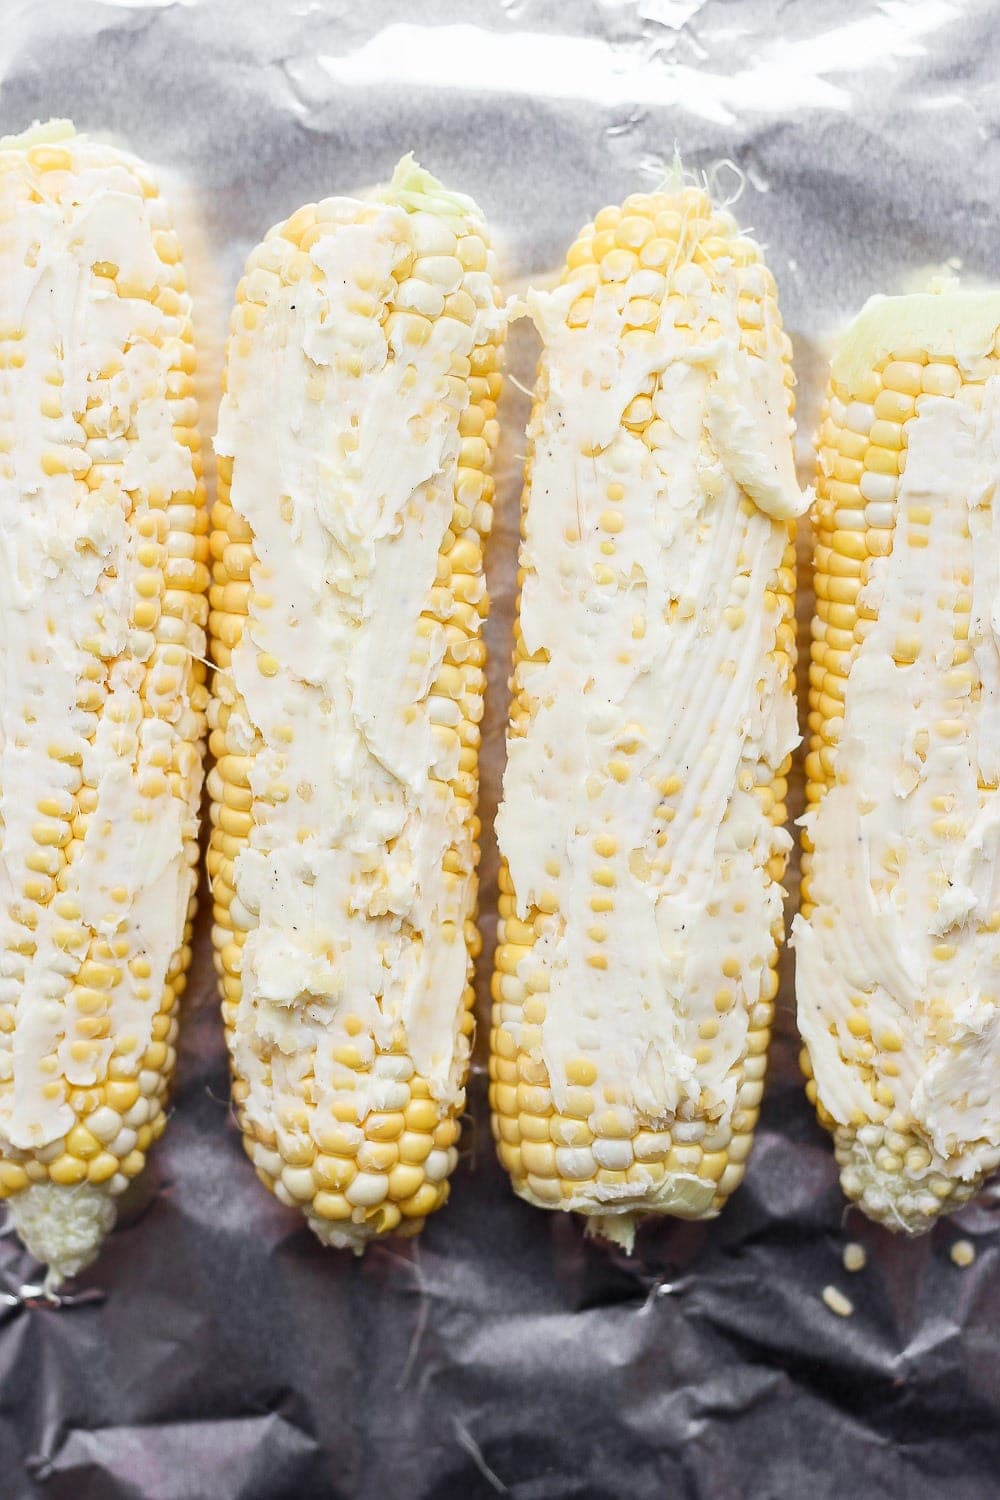 corn on the cob with butter spread on it, laid atop tin foil and ready to be made into a foil pack